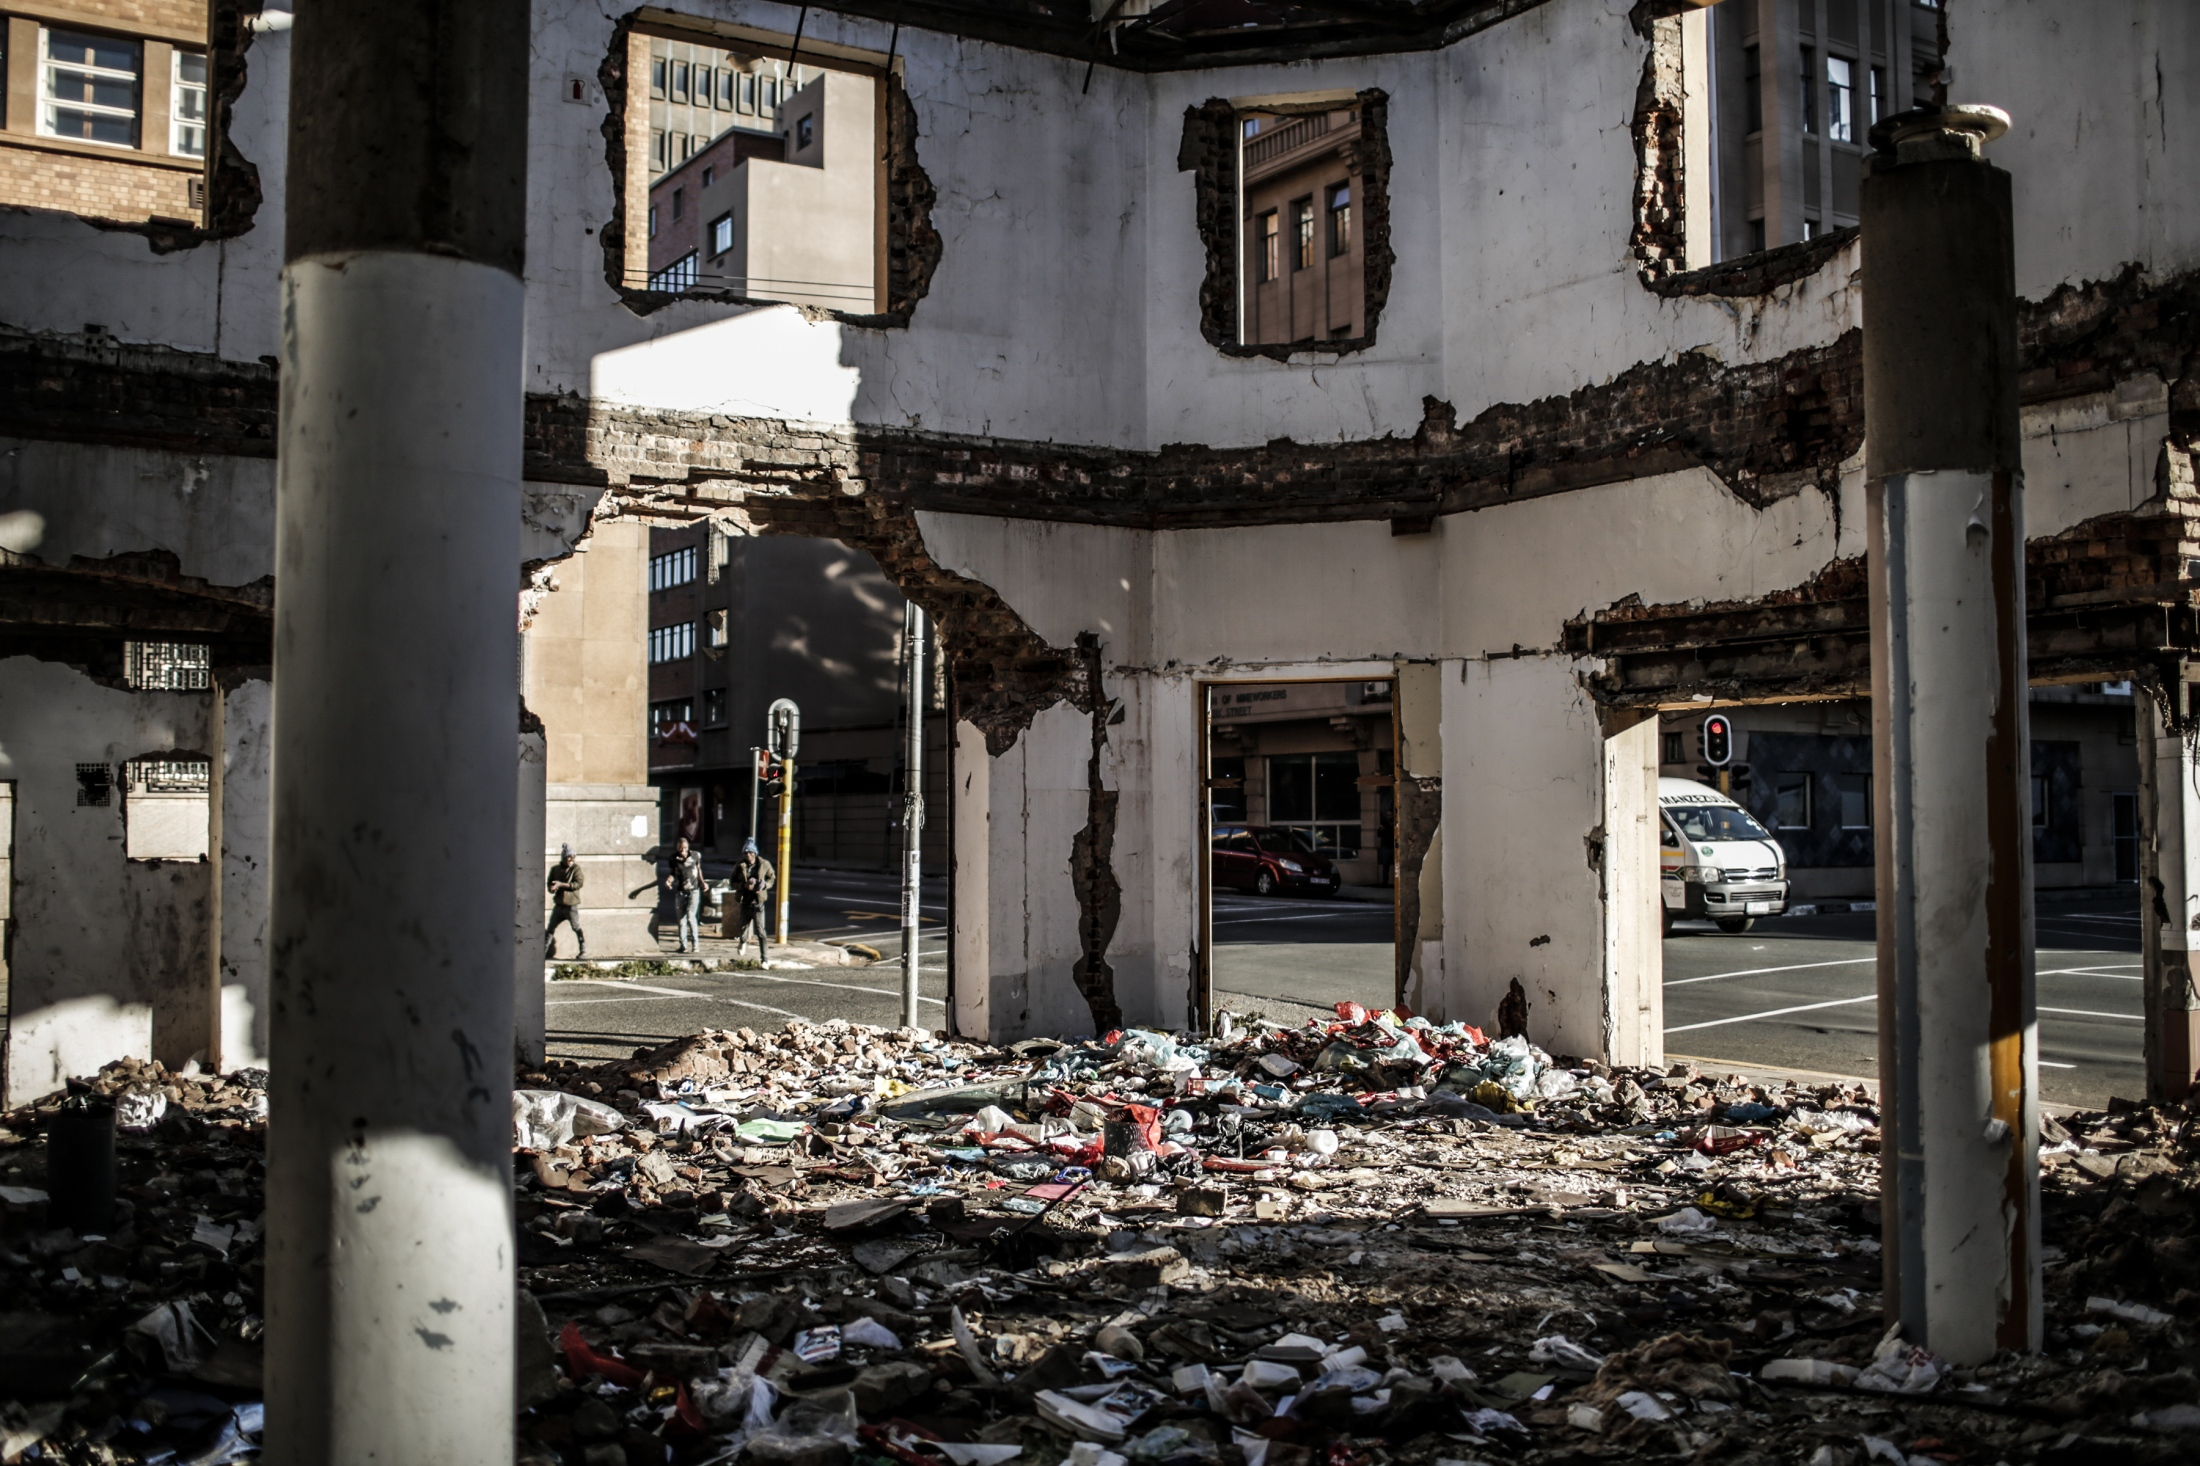 Plastic waste is dumped in an abandoned building in downtown Johannesburg.